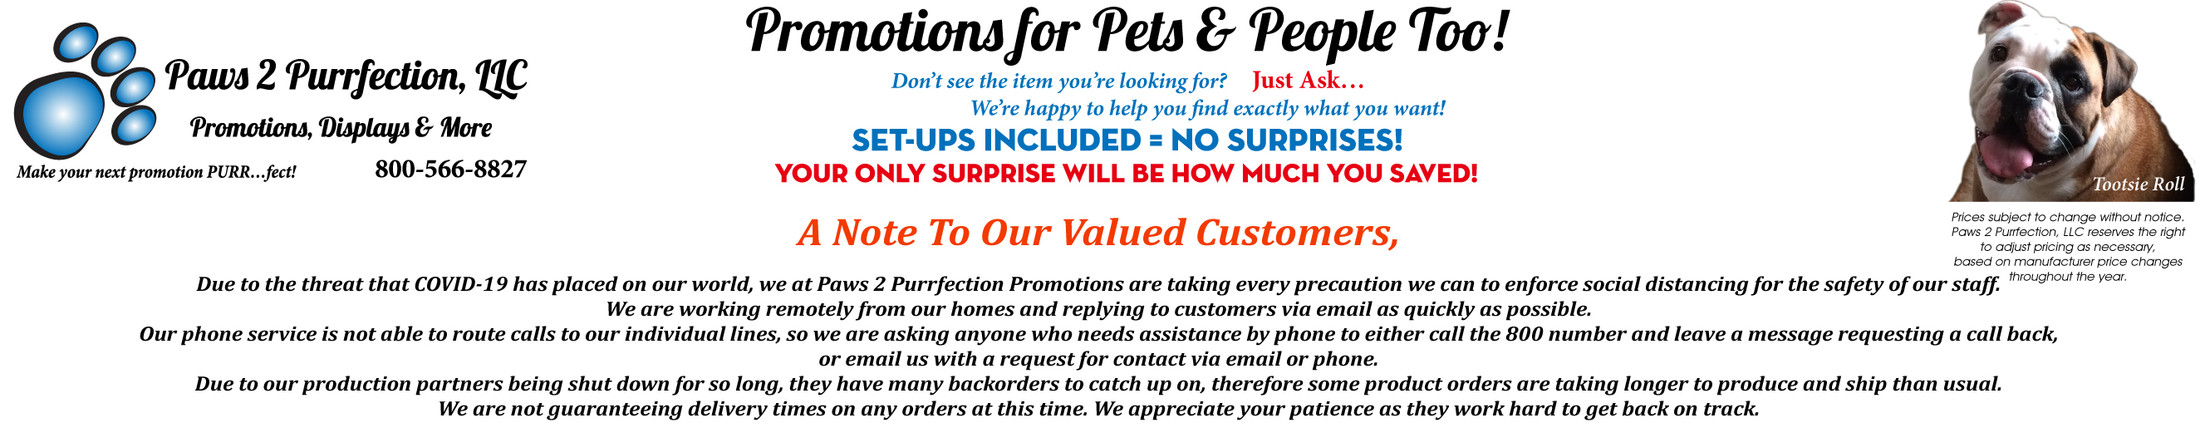 Paws 2 Purrfection, LLC